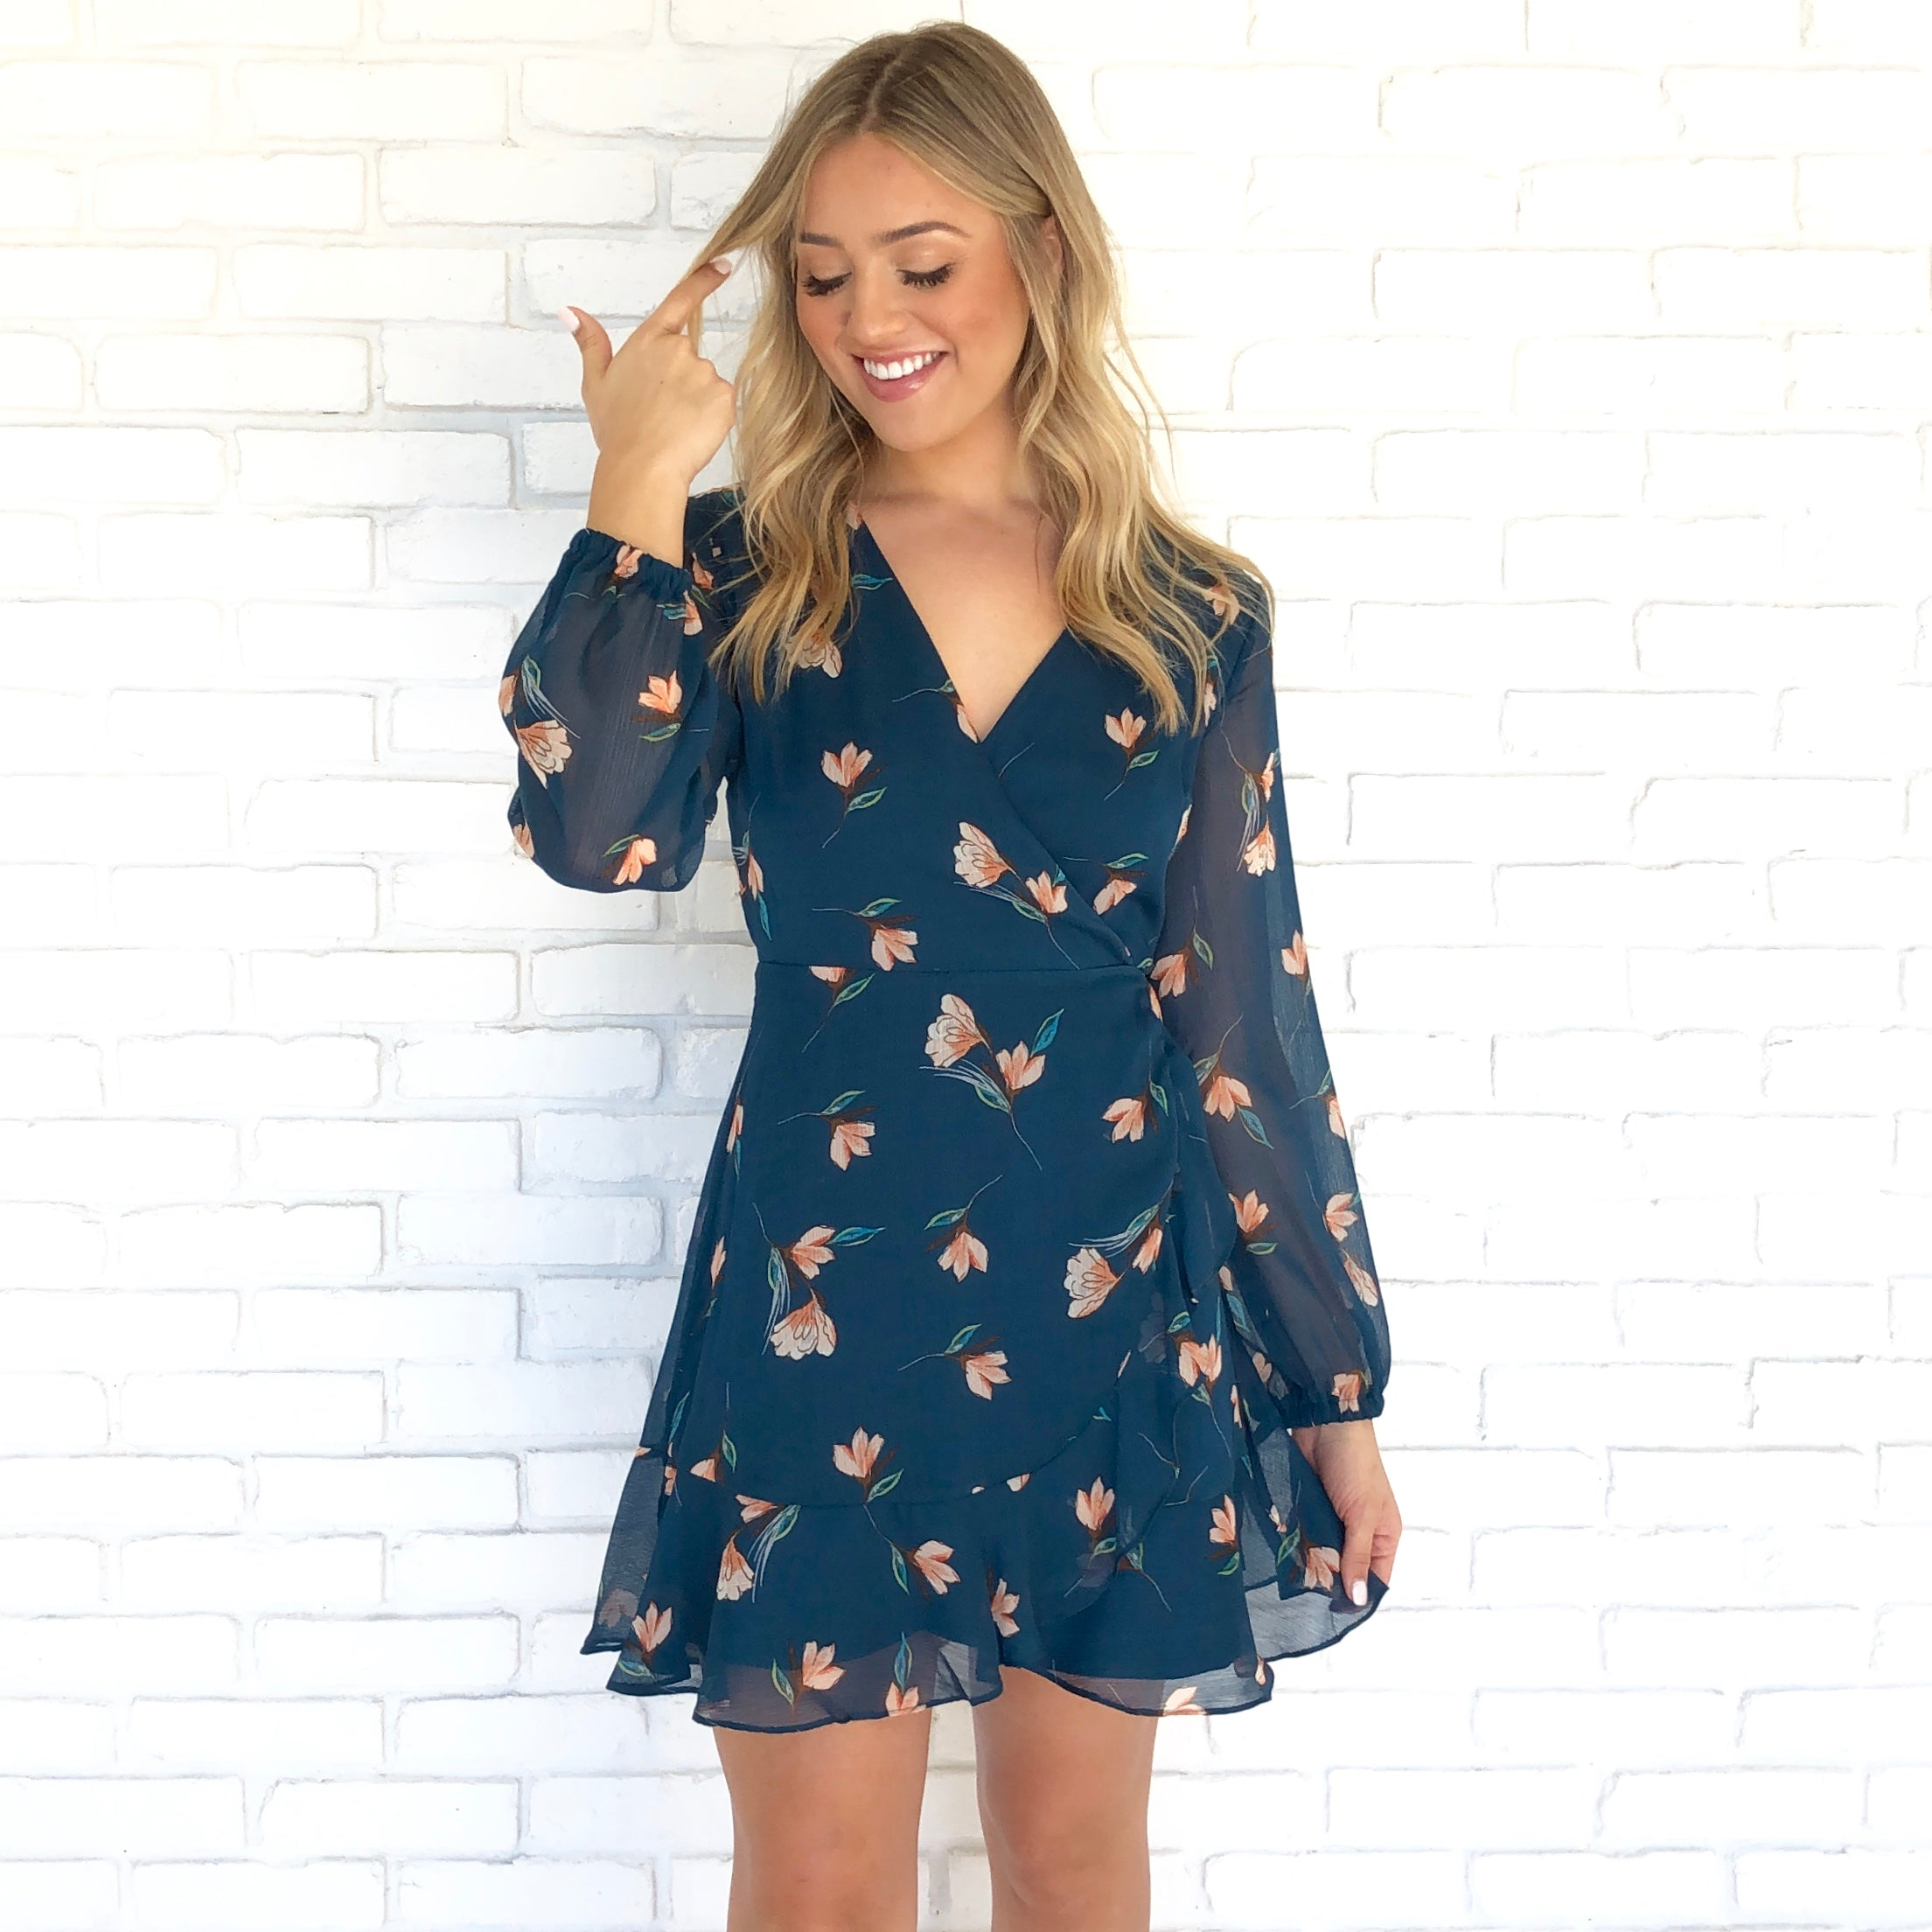 07fdc948358 Darling Teal Floral Dress - Dainty Hooligan Boutique